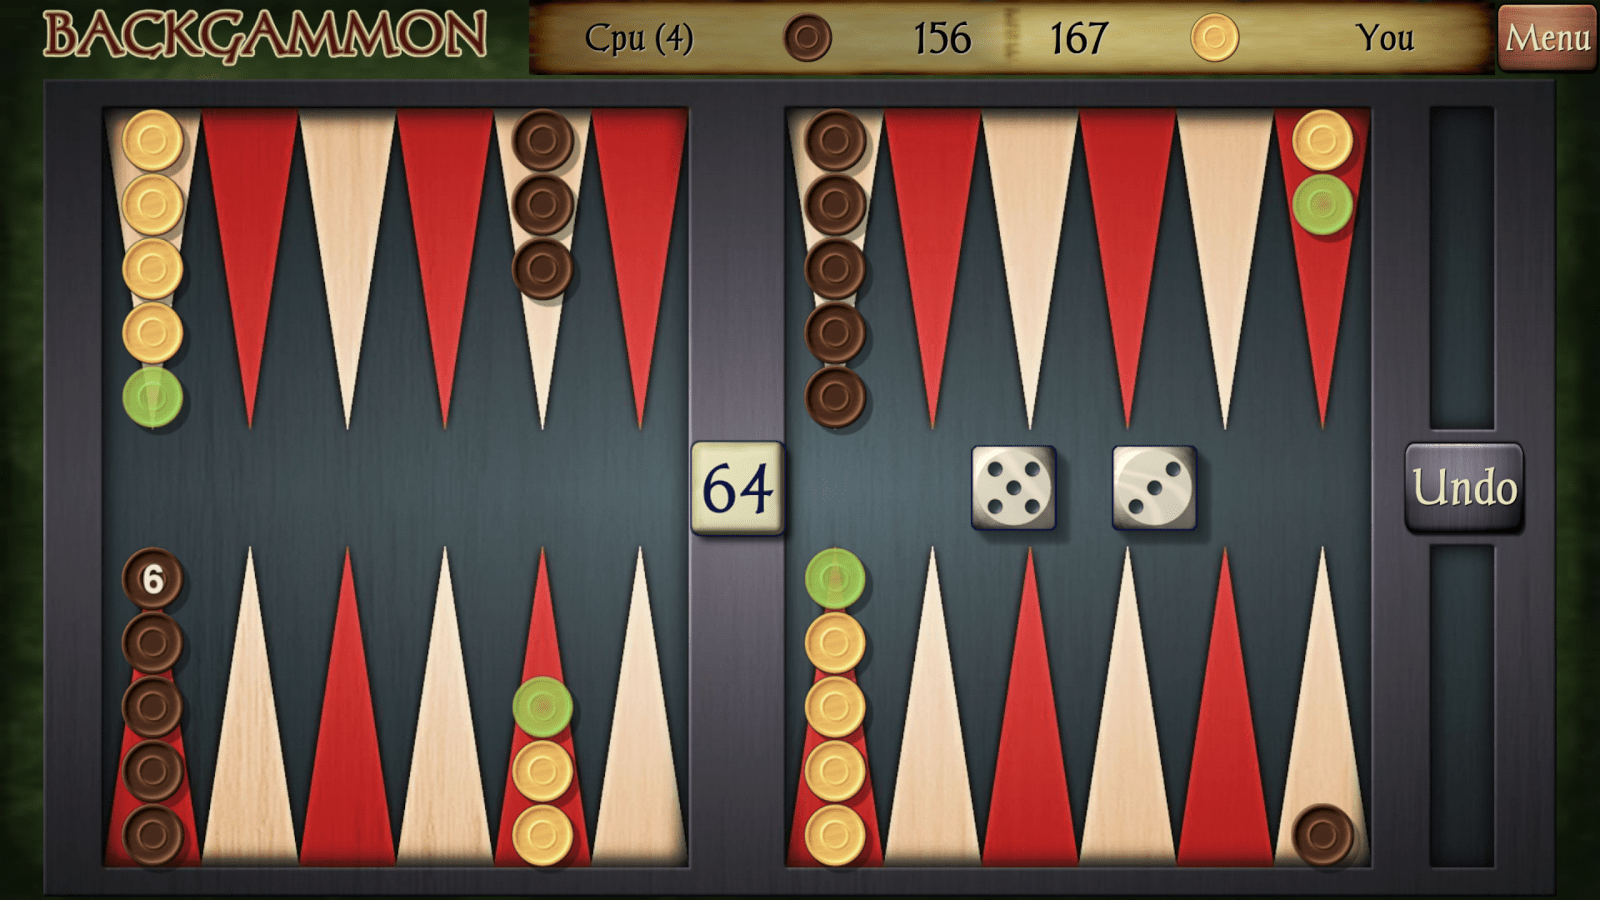 Different types of variants of backgammon game played by people